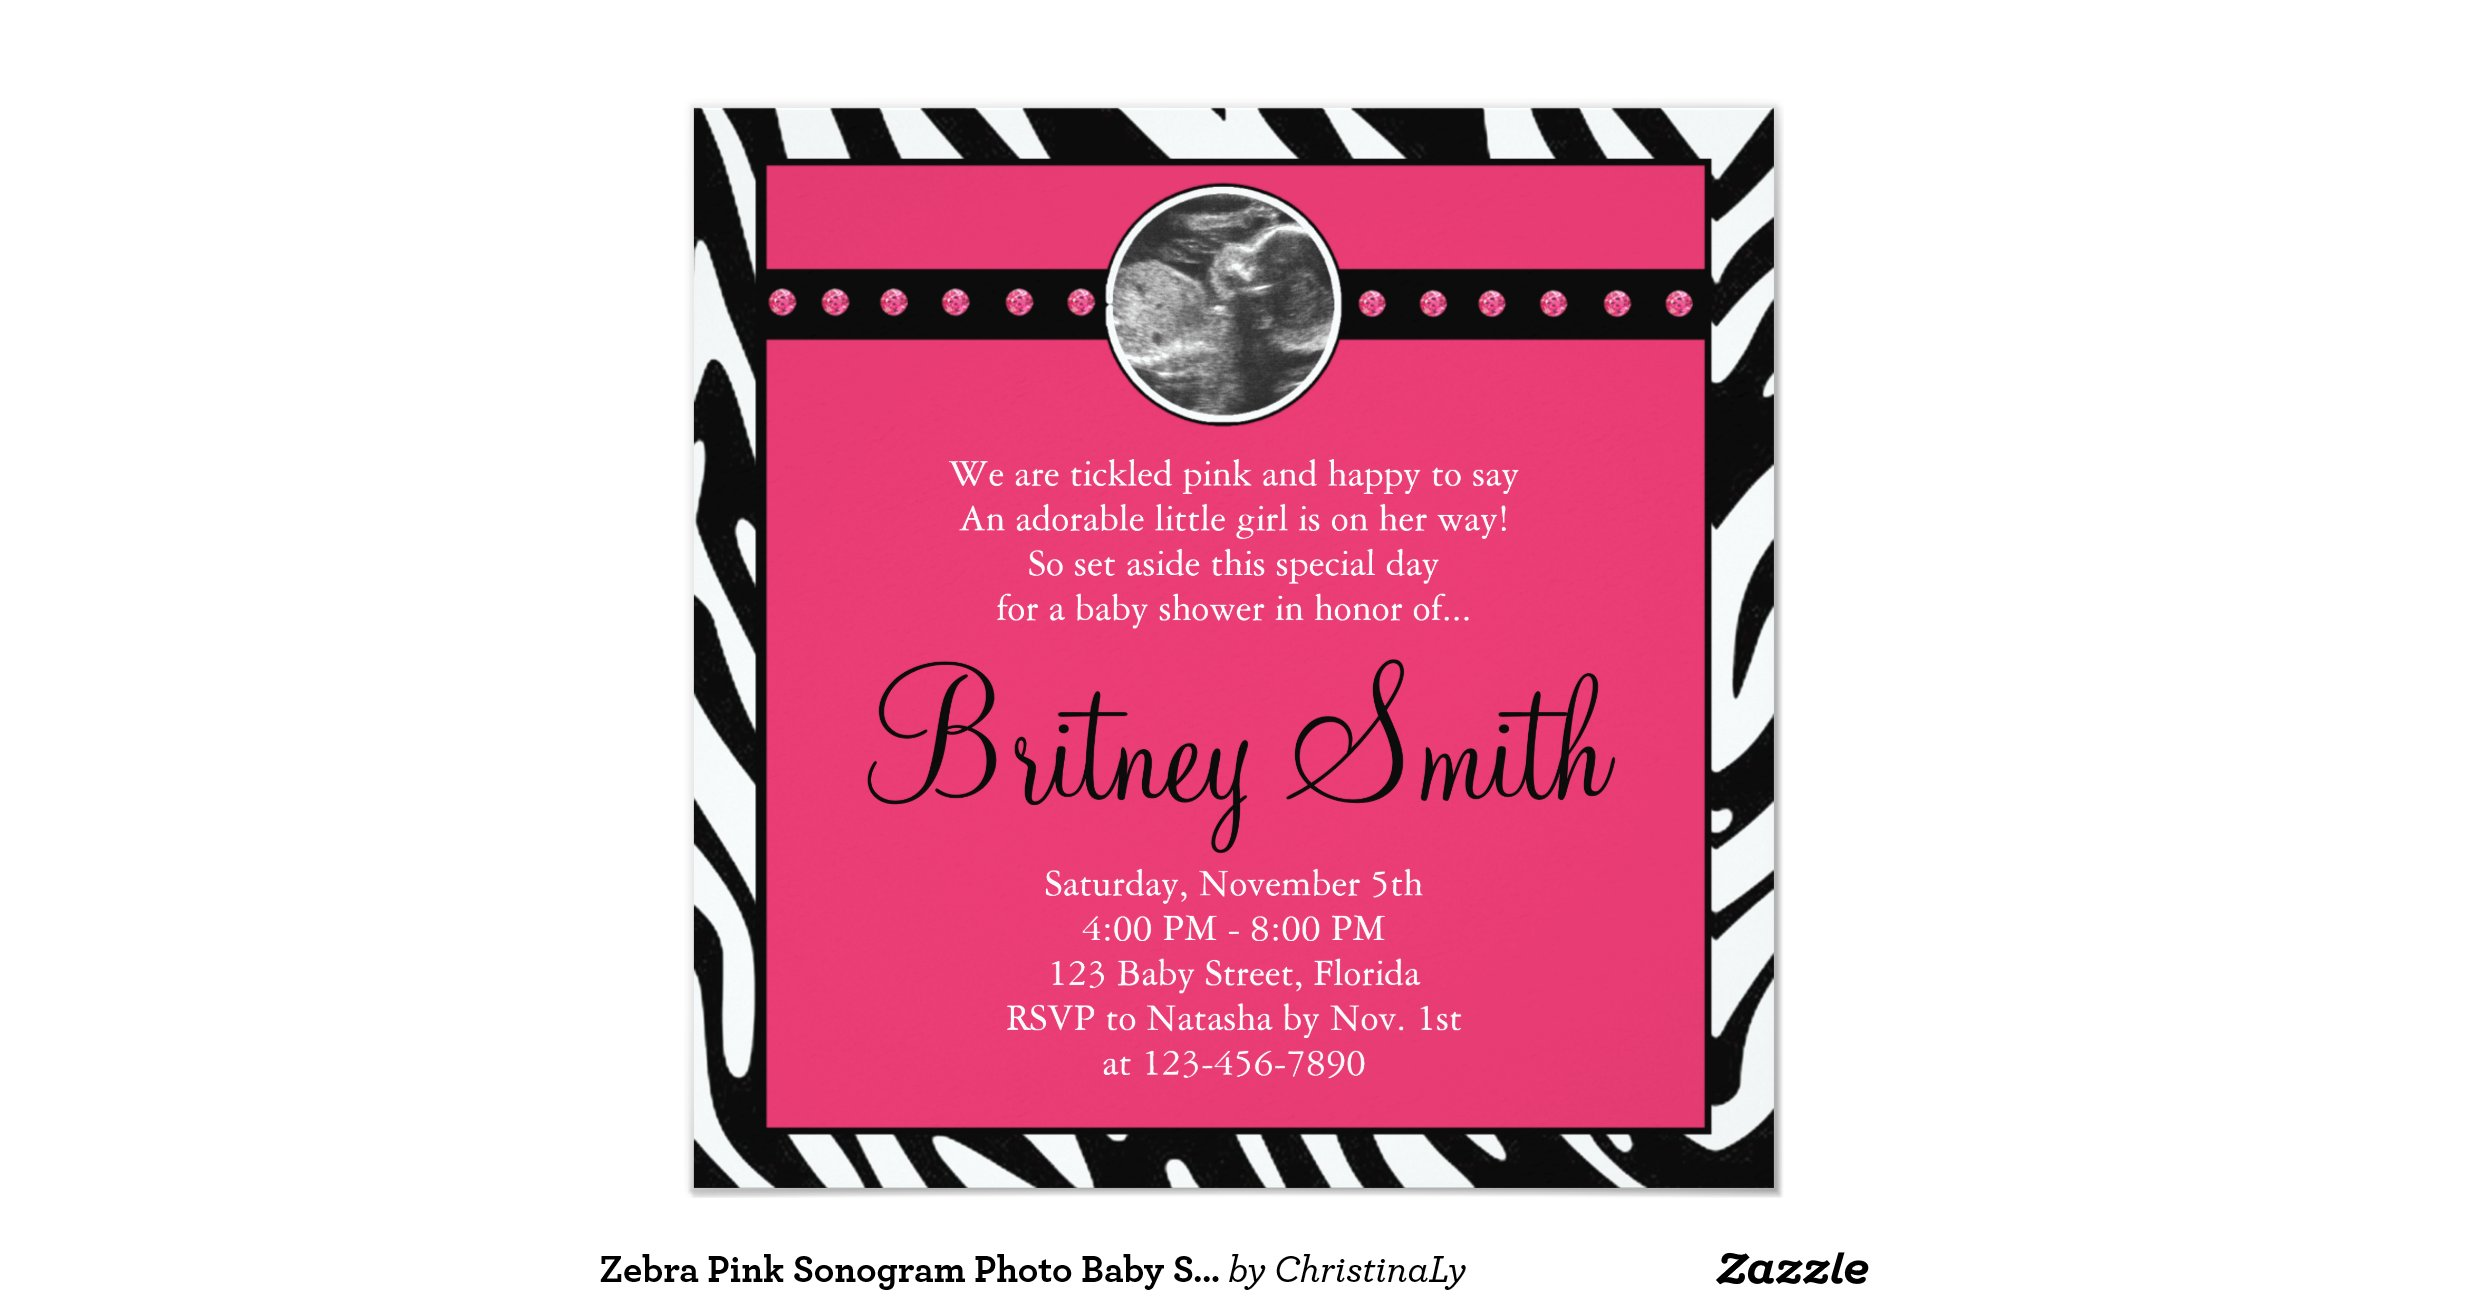 Sonogram Baby Shower Invitations - Best Printable Invitation Design ...